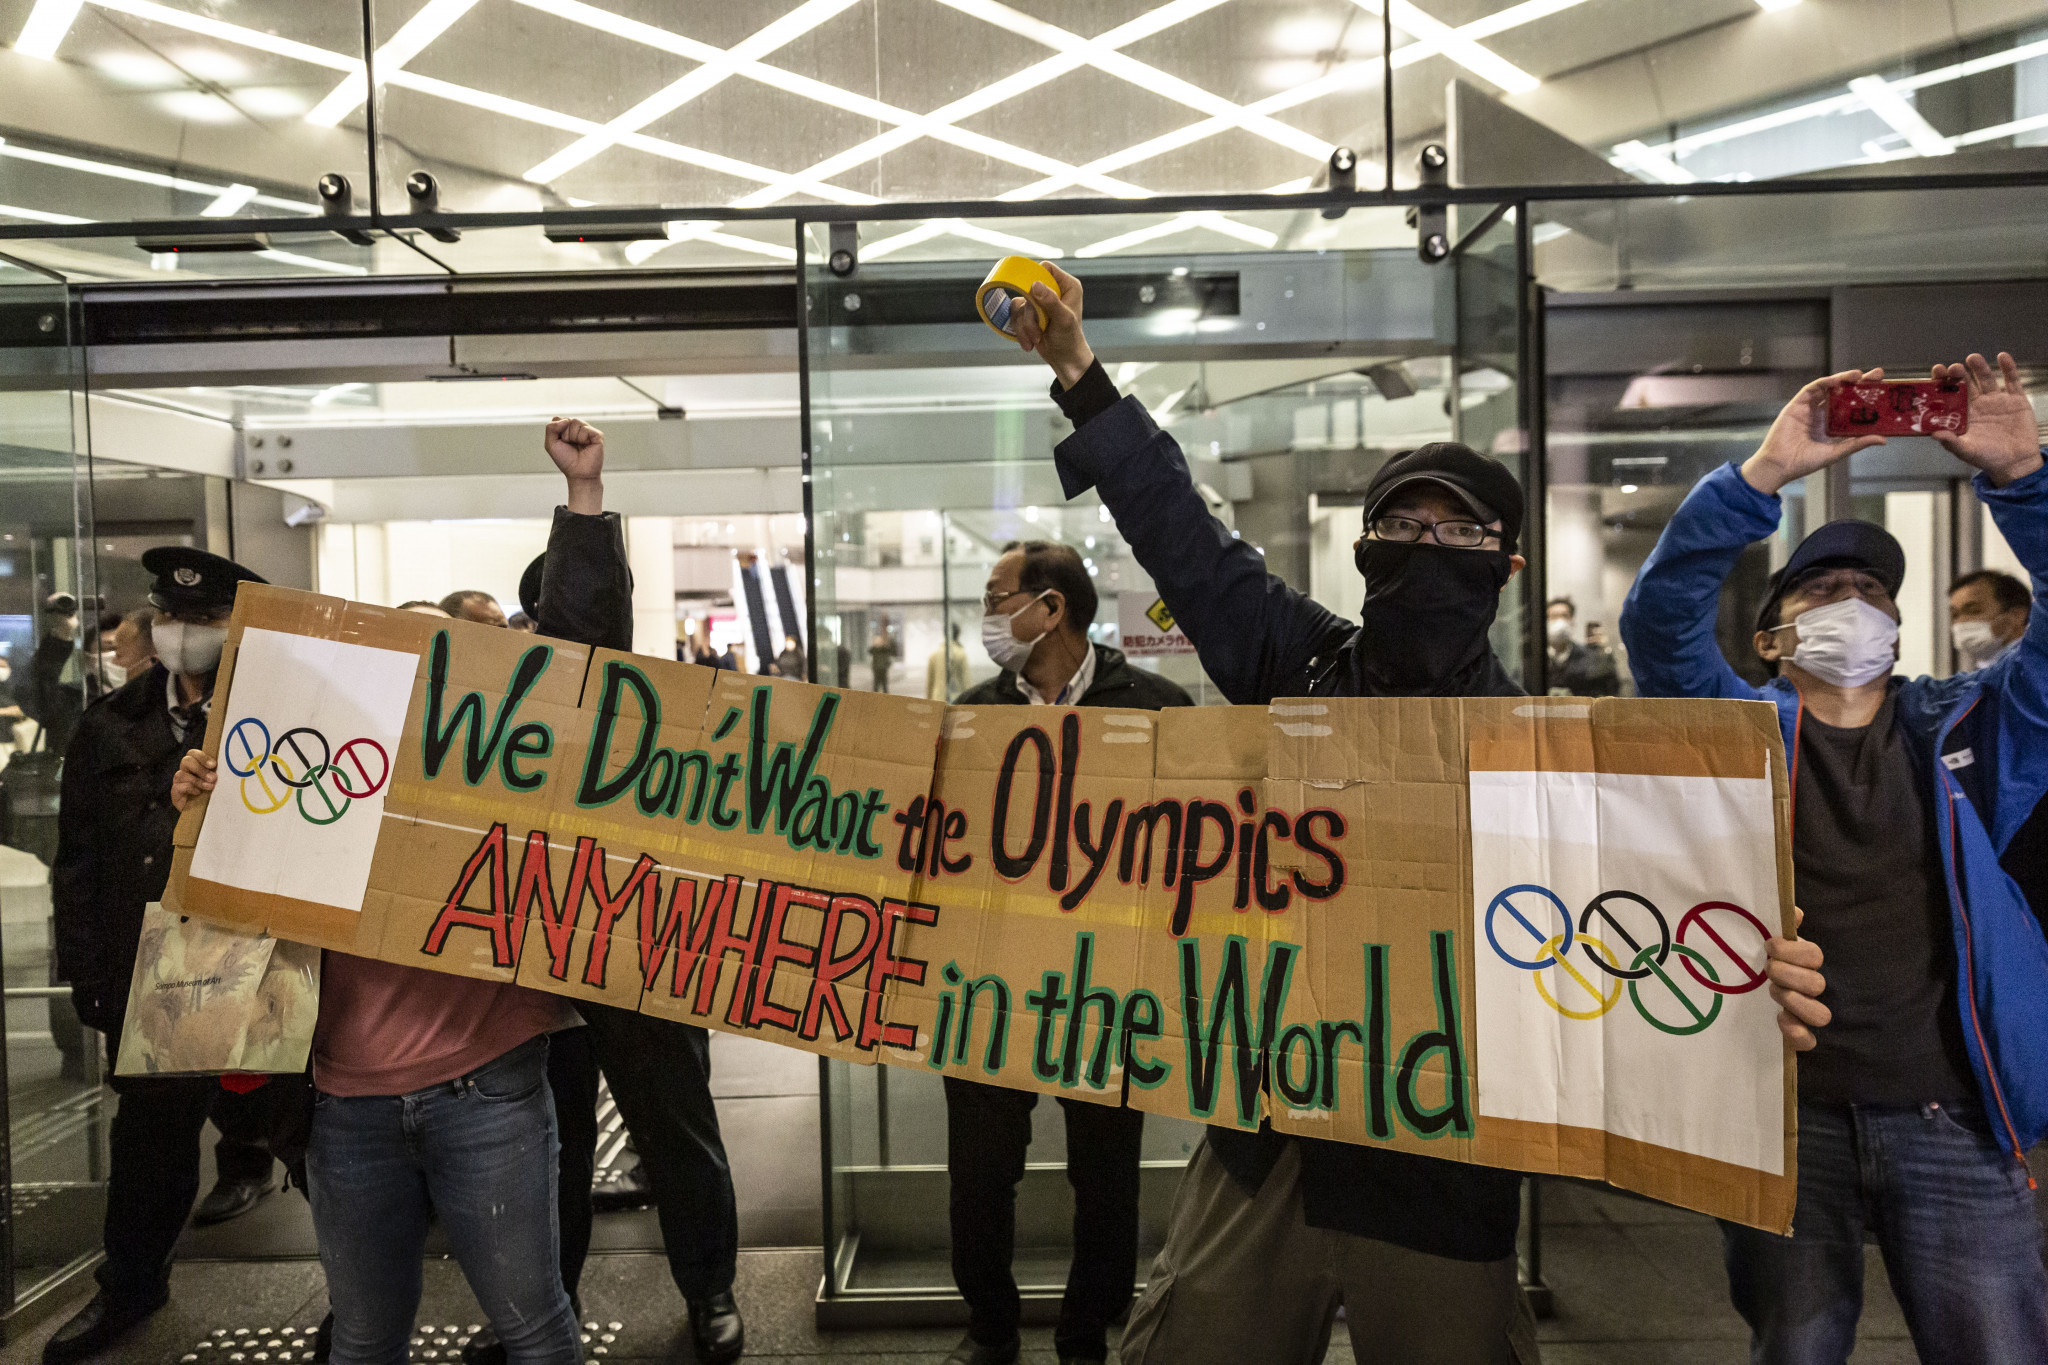 Almost 40 per cent of respondents in the Kyodo News survey want the Olympics to be cancelled ©Getty Images